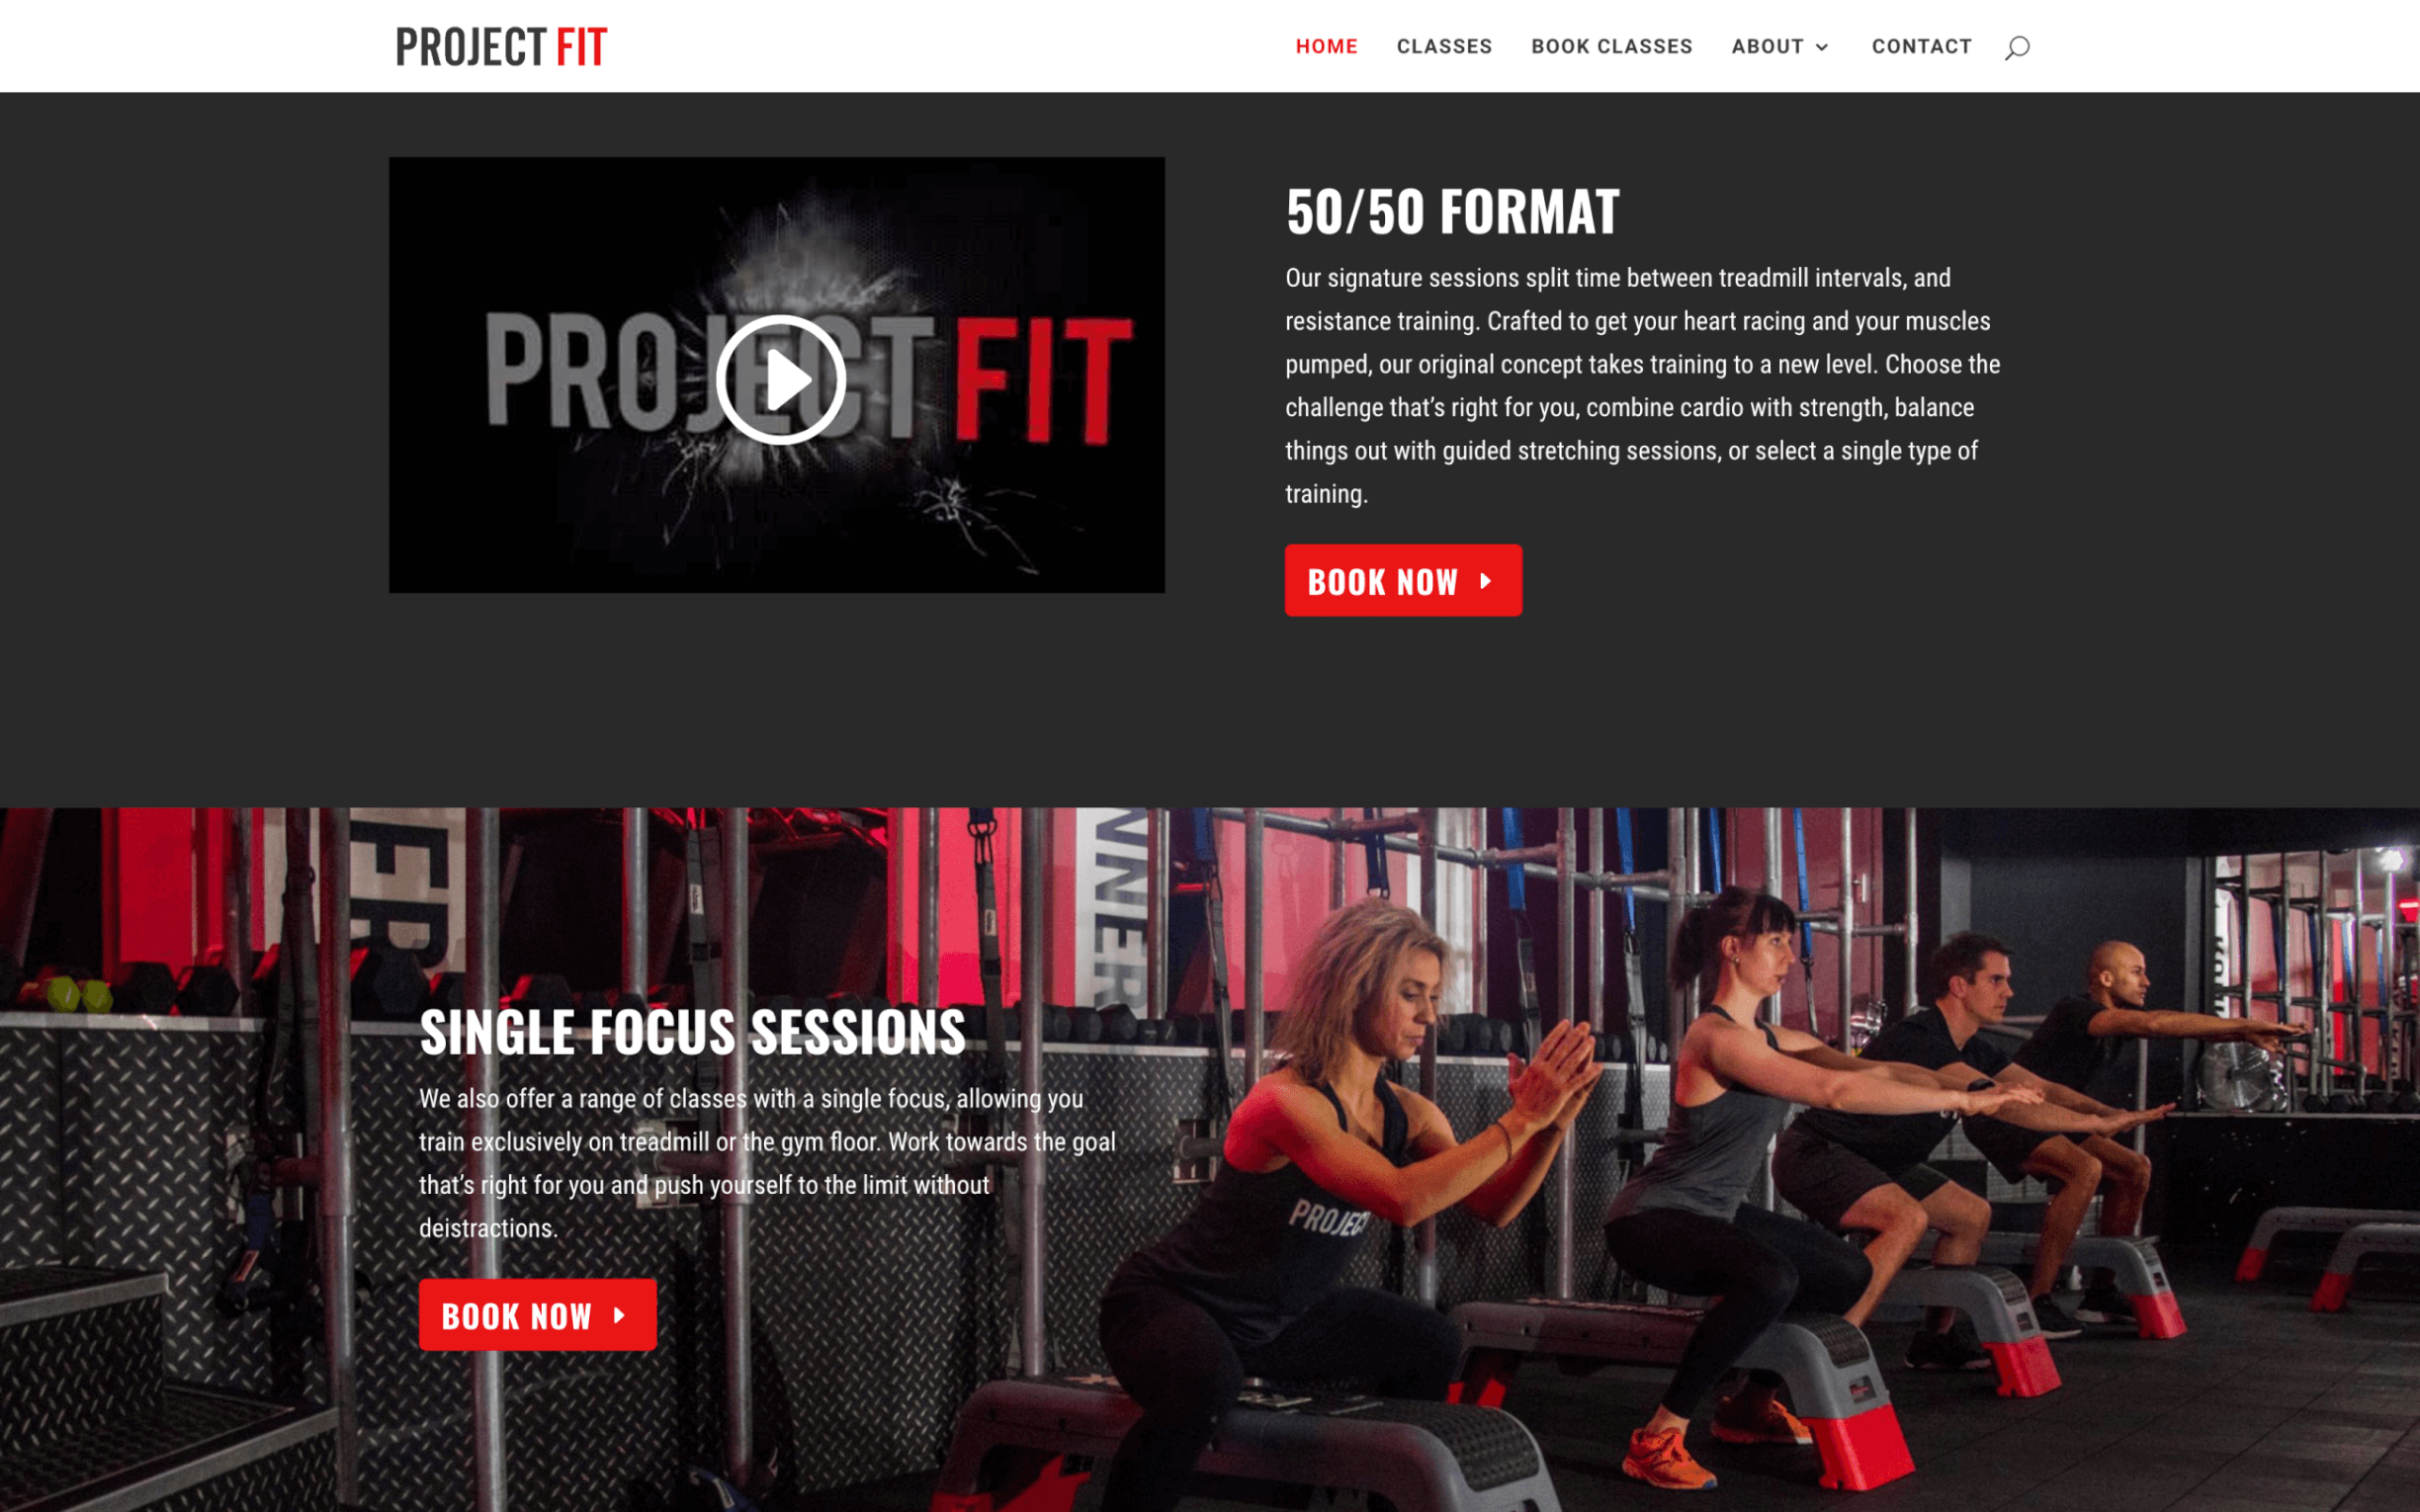 Project fit great photo example - Gym and Personal Trainer Website Design Tips 2017 health-fitness